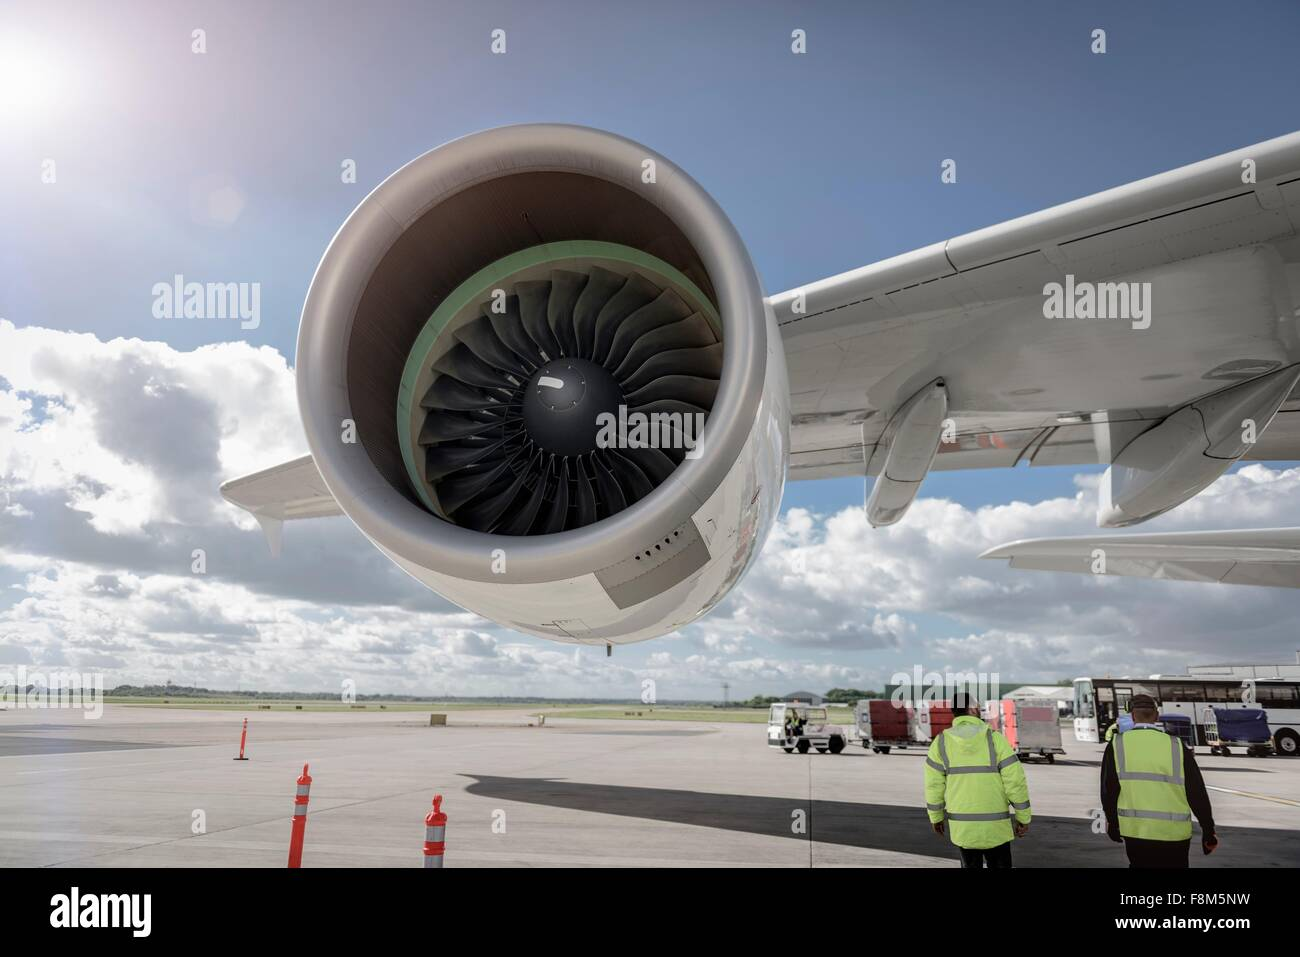 Ground crew with A380 jet engine aircraft - Stock Image